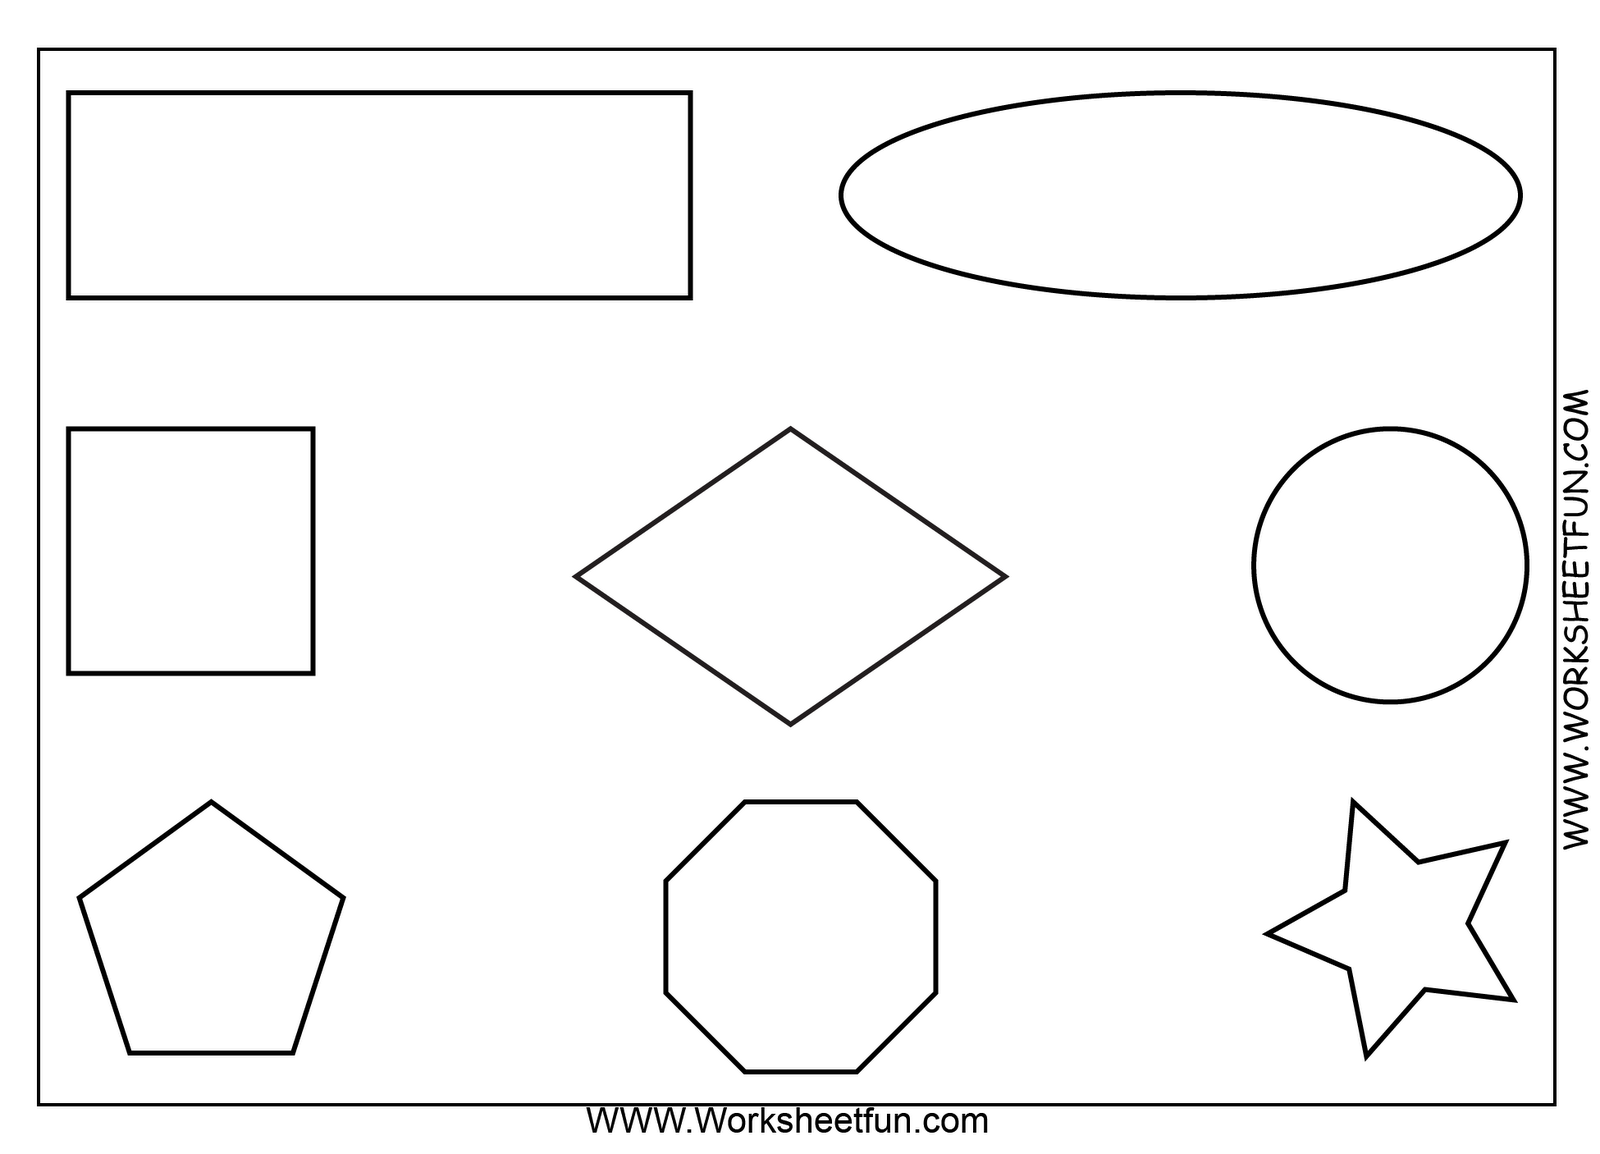 preschool worksheets connect pictures 5 worksheets free printable – Preschool Worksheets Printable